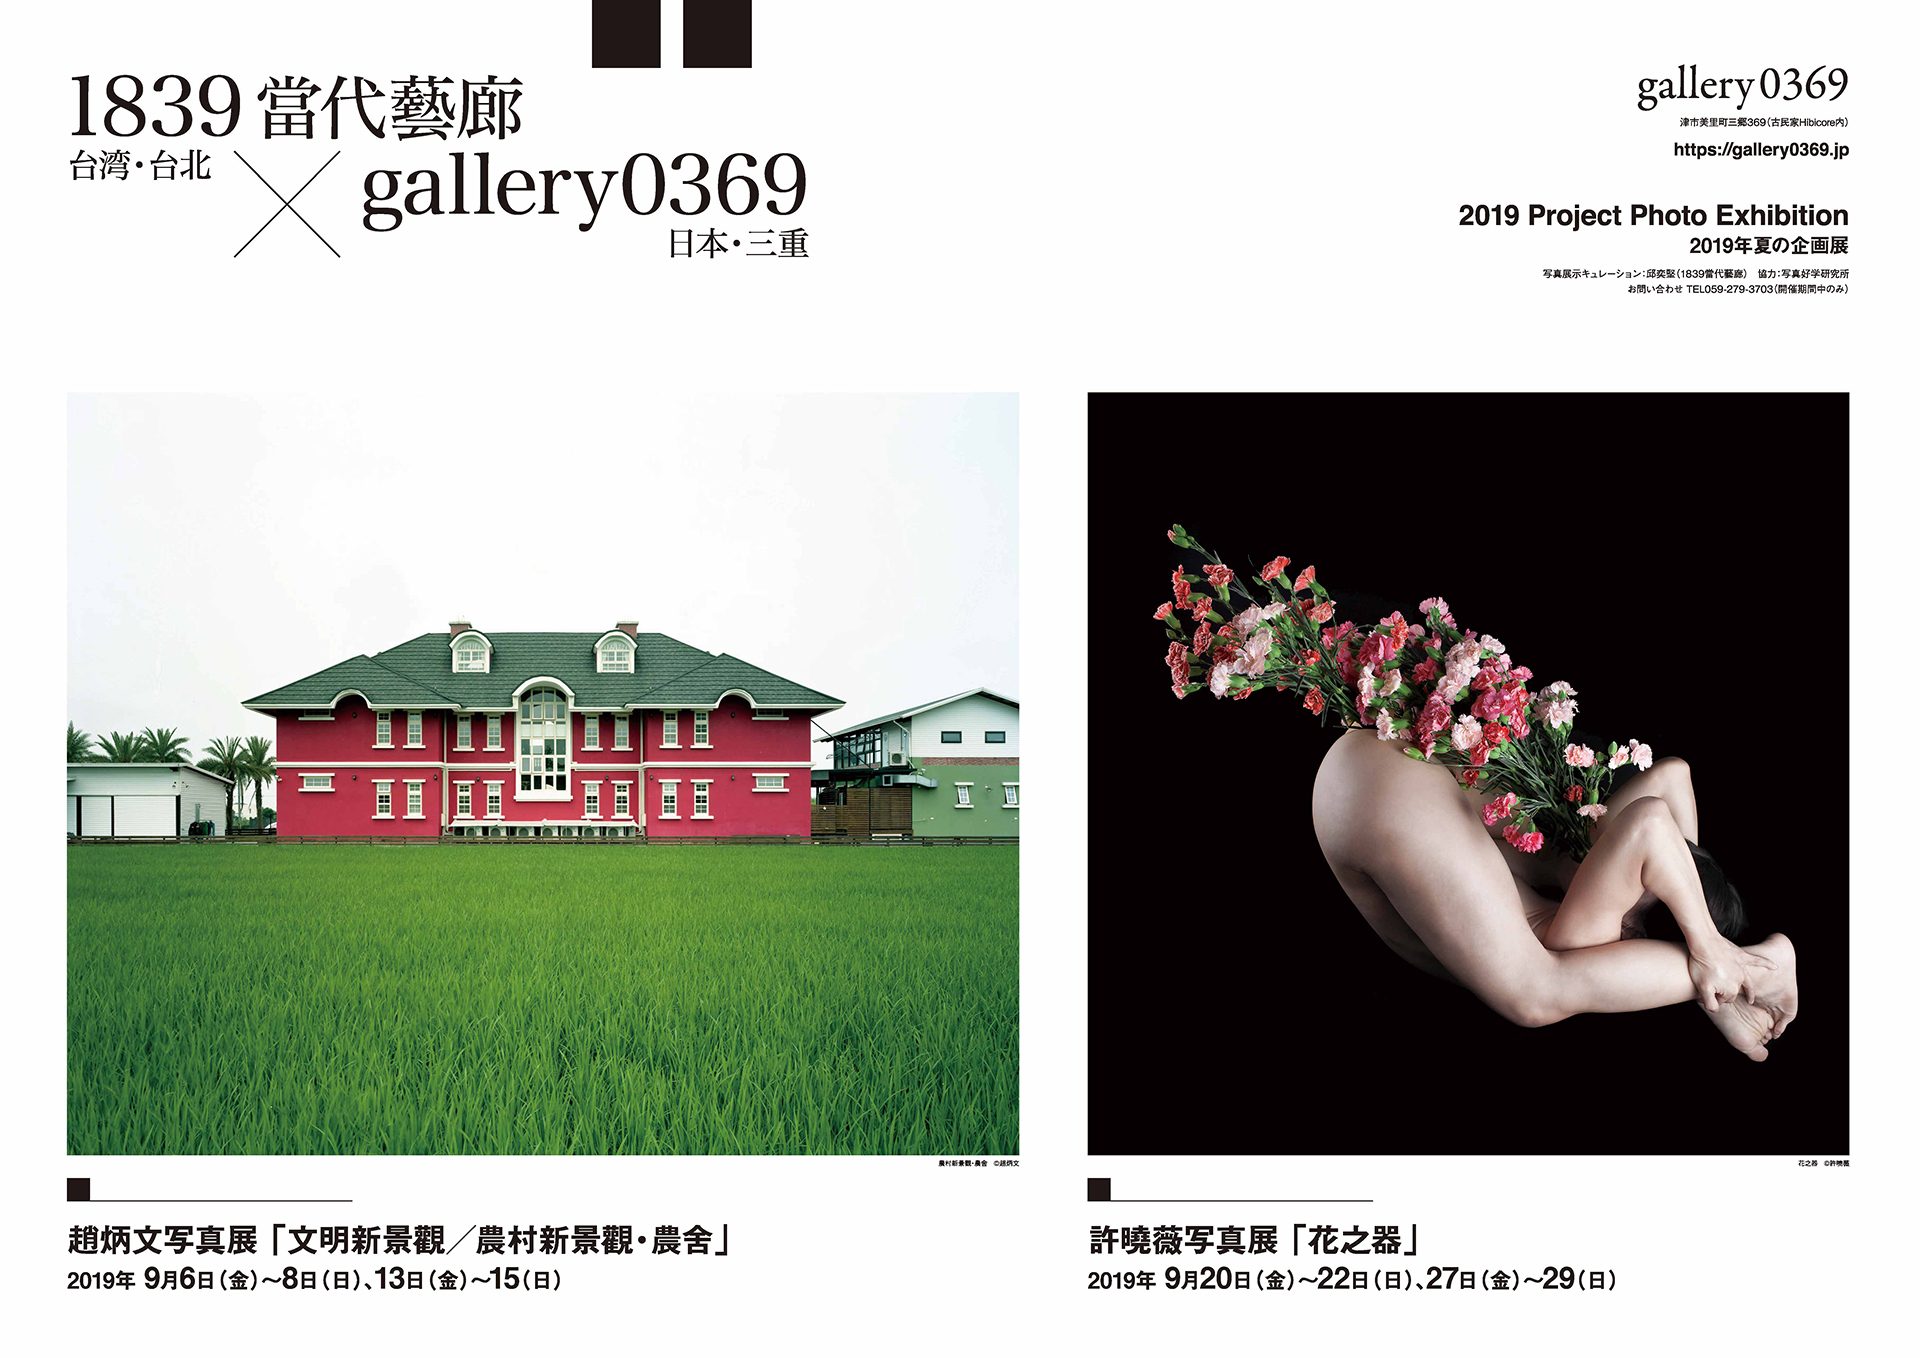 2019 gallery0369 taiwan exhibition